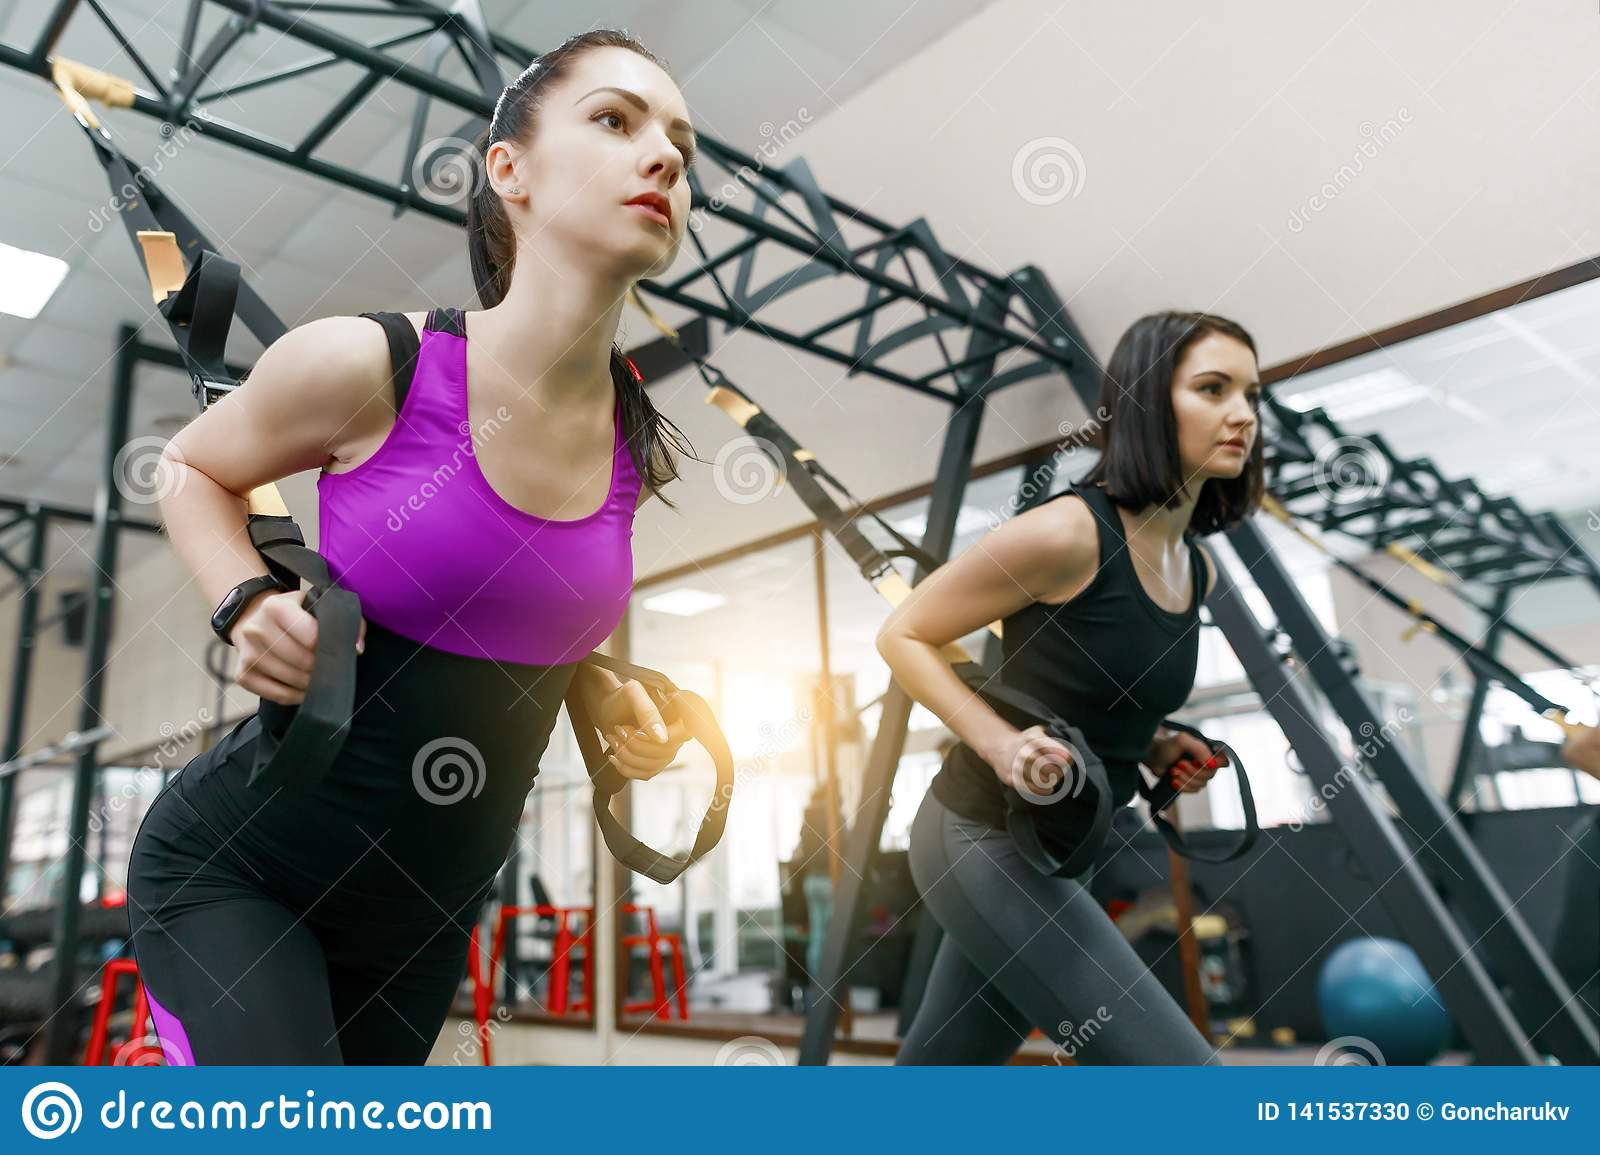 Group Training With Loops In The Gym, Two Young Attractive Fitness Women  Doing Cross Fit With Straps System. Sport, Teamwork, Stock Photo - Image of  lifestyle, healthy: 141537330